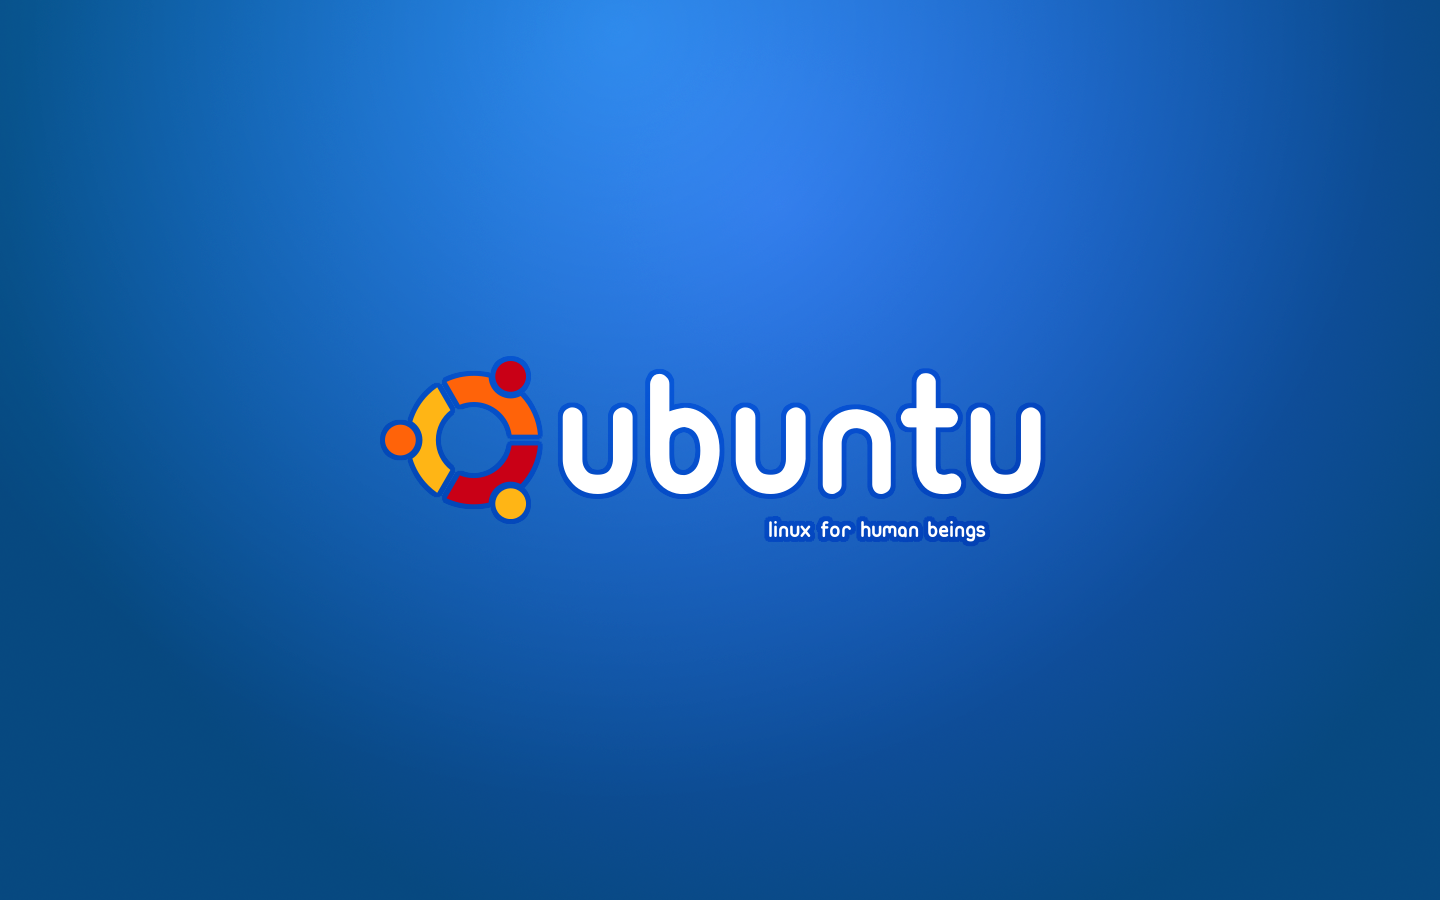 New Ubuntu Wallpapers   NoobsLab UbuntuLinux News Reviews 1440x900